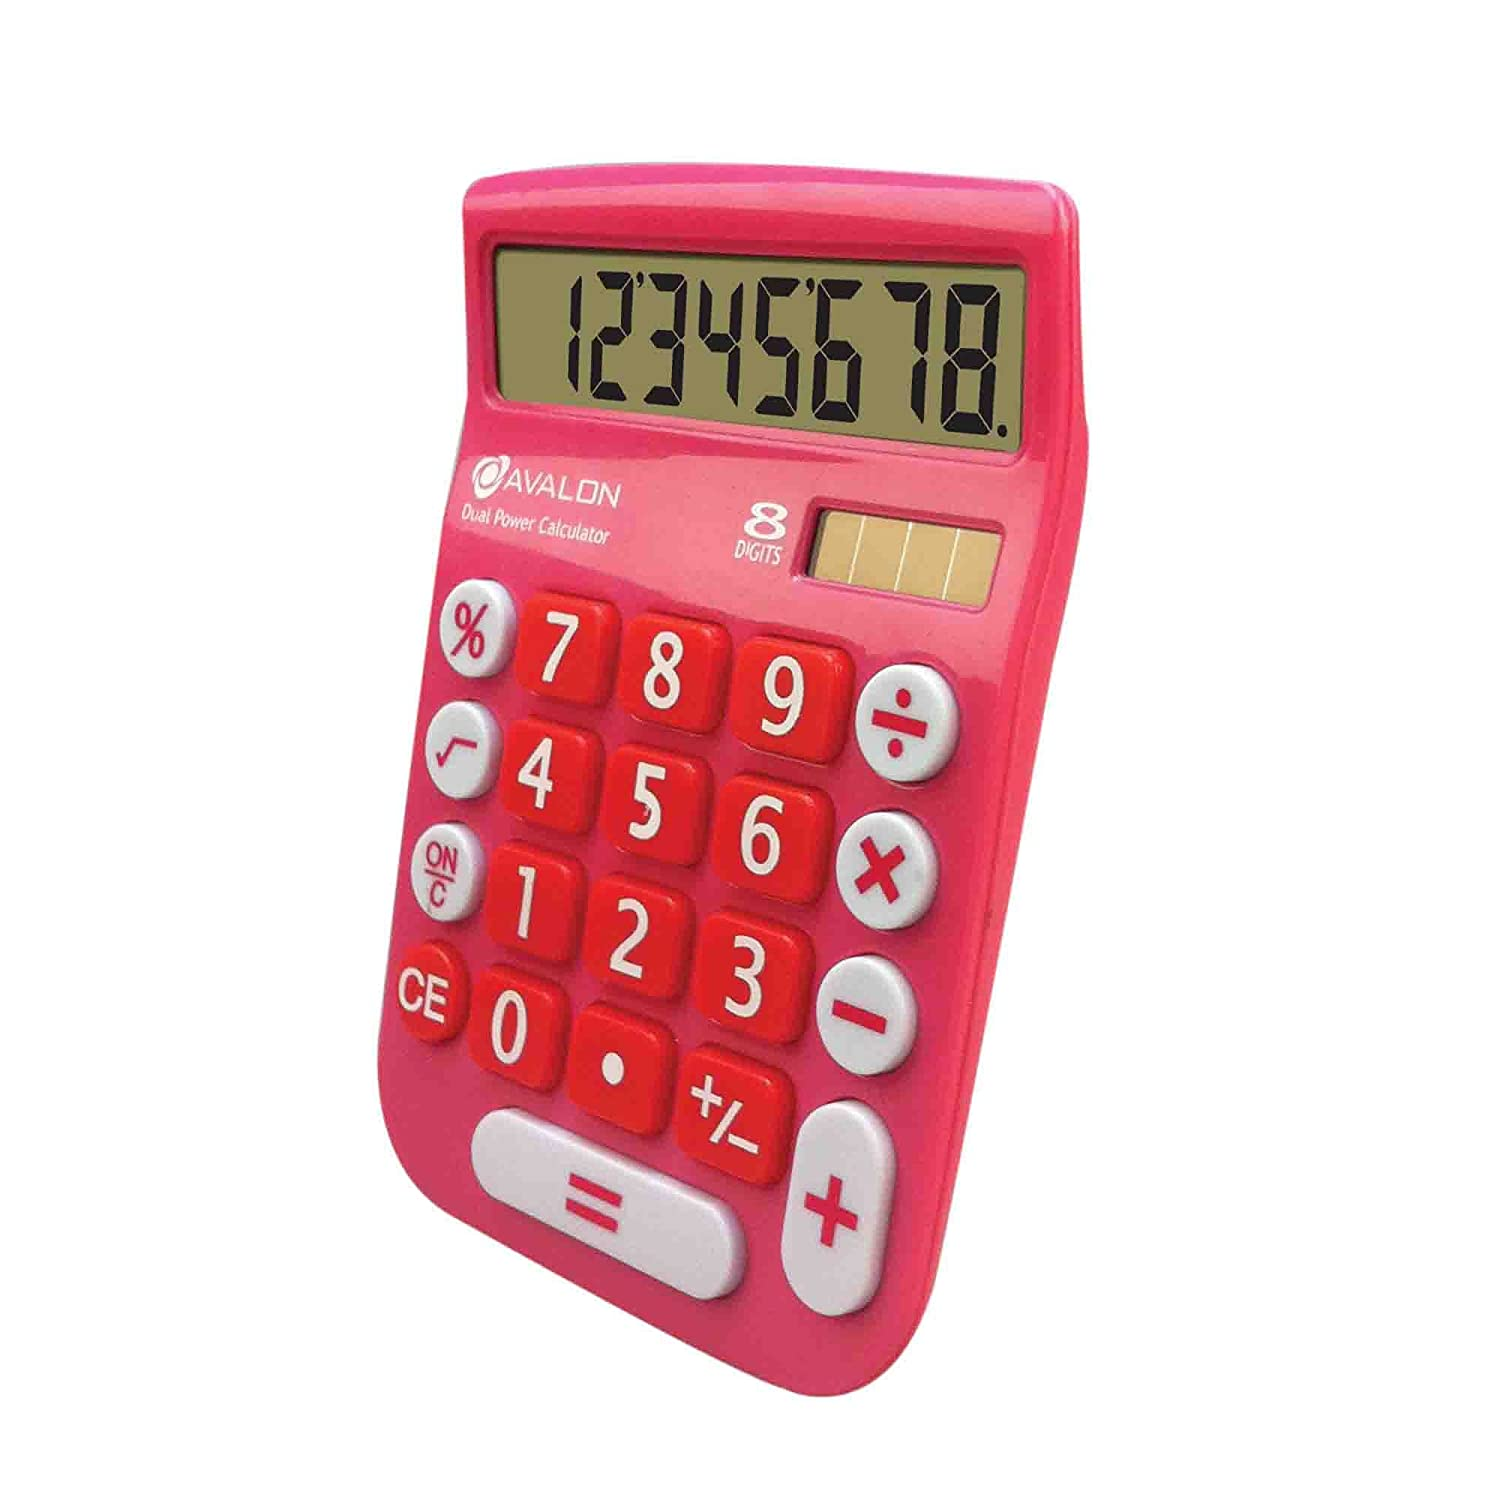 Office Style 8 Digit Dual Powered Desktop Calculator Casio Colorful Ms 20uc Black Lcd Display Pink Electronics